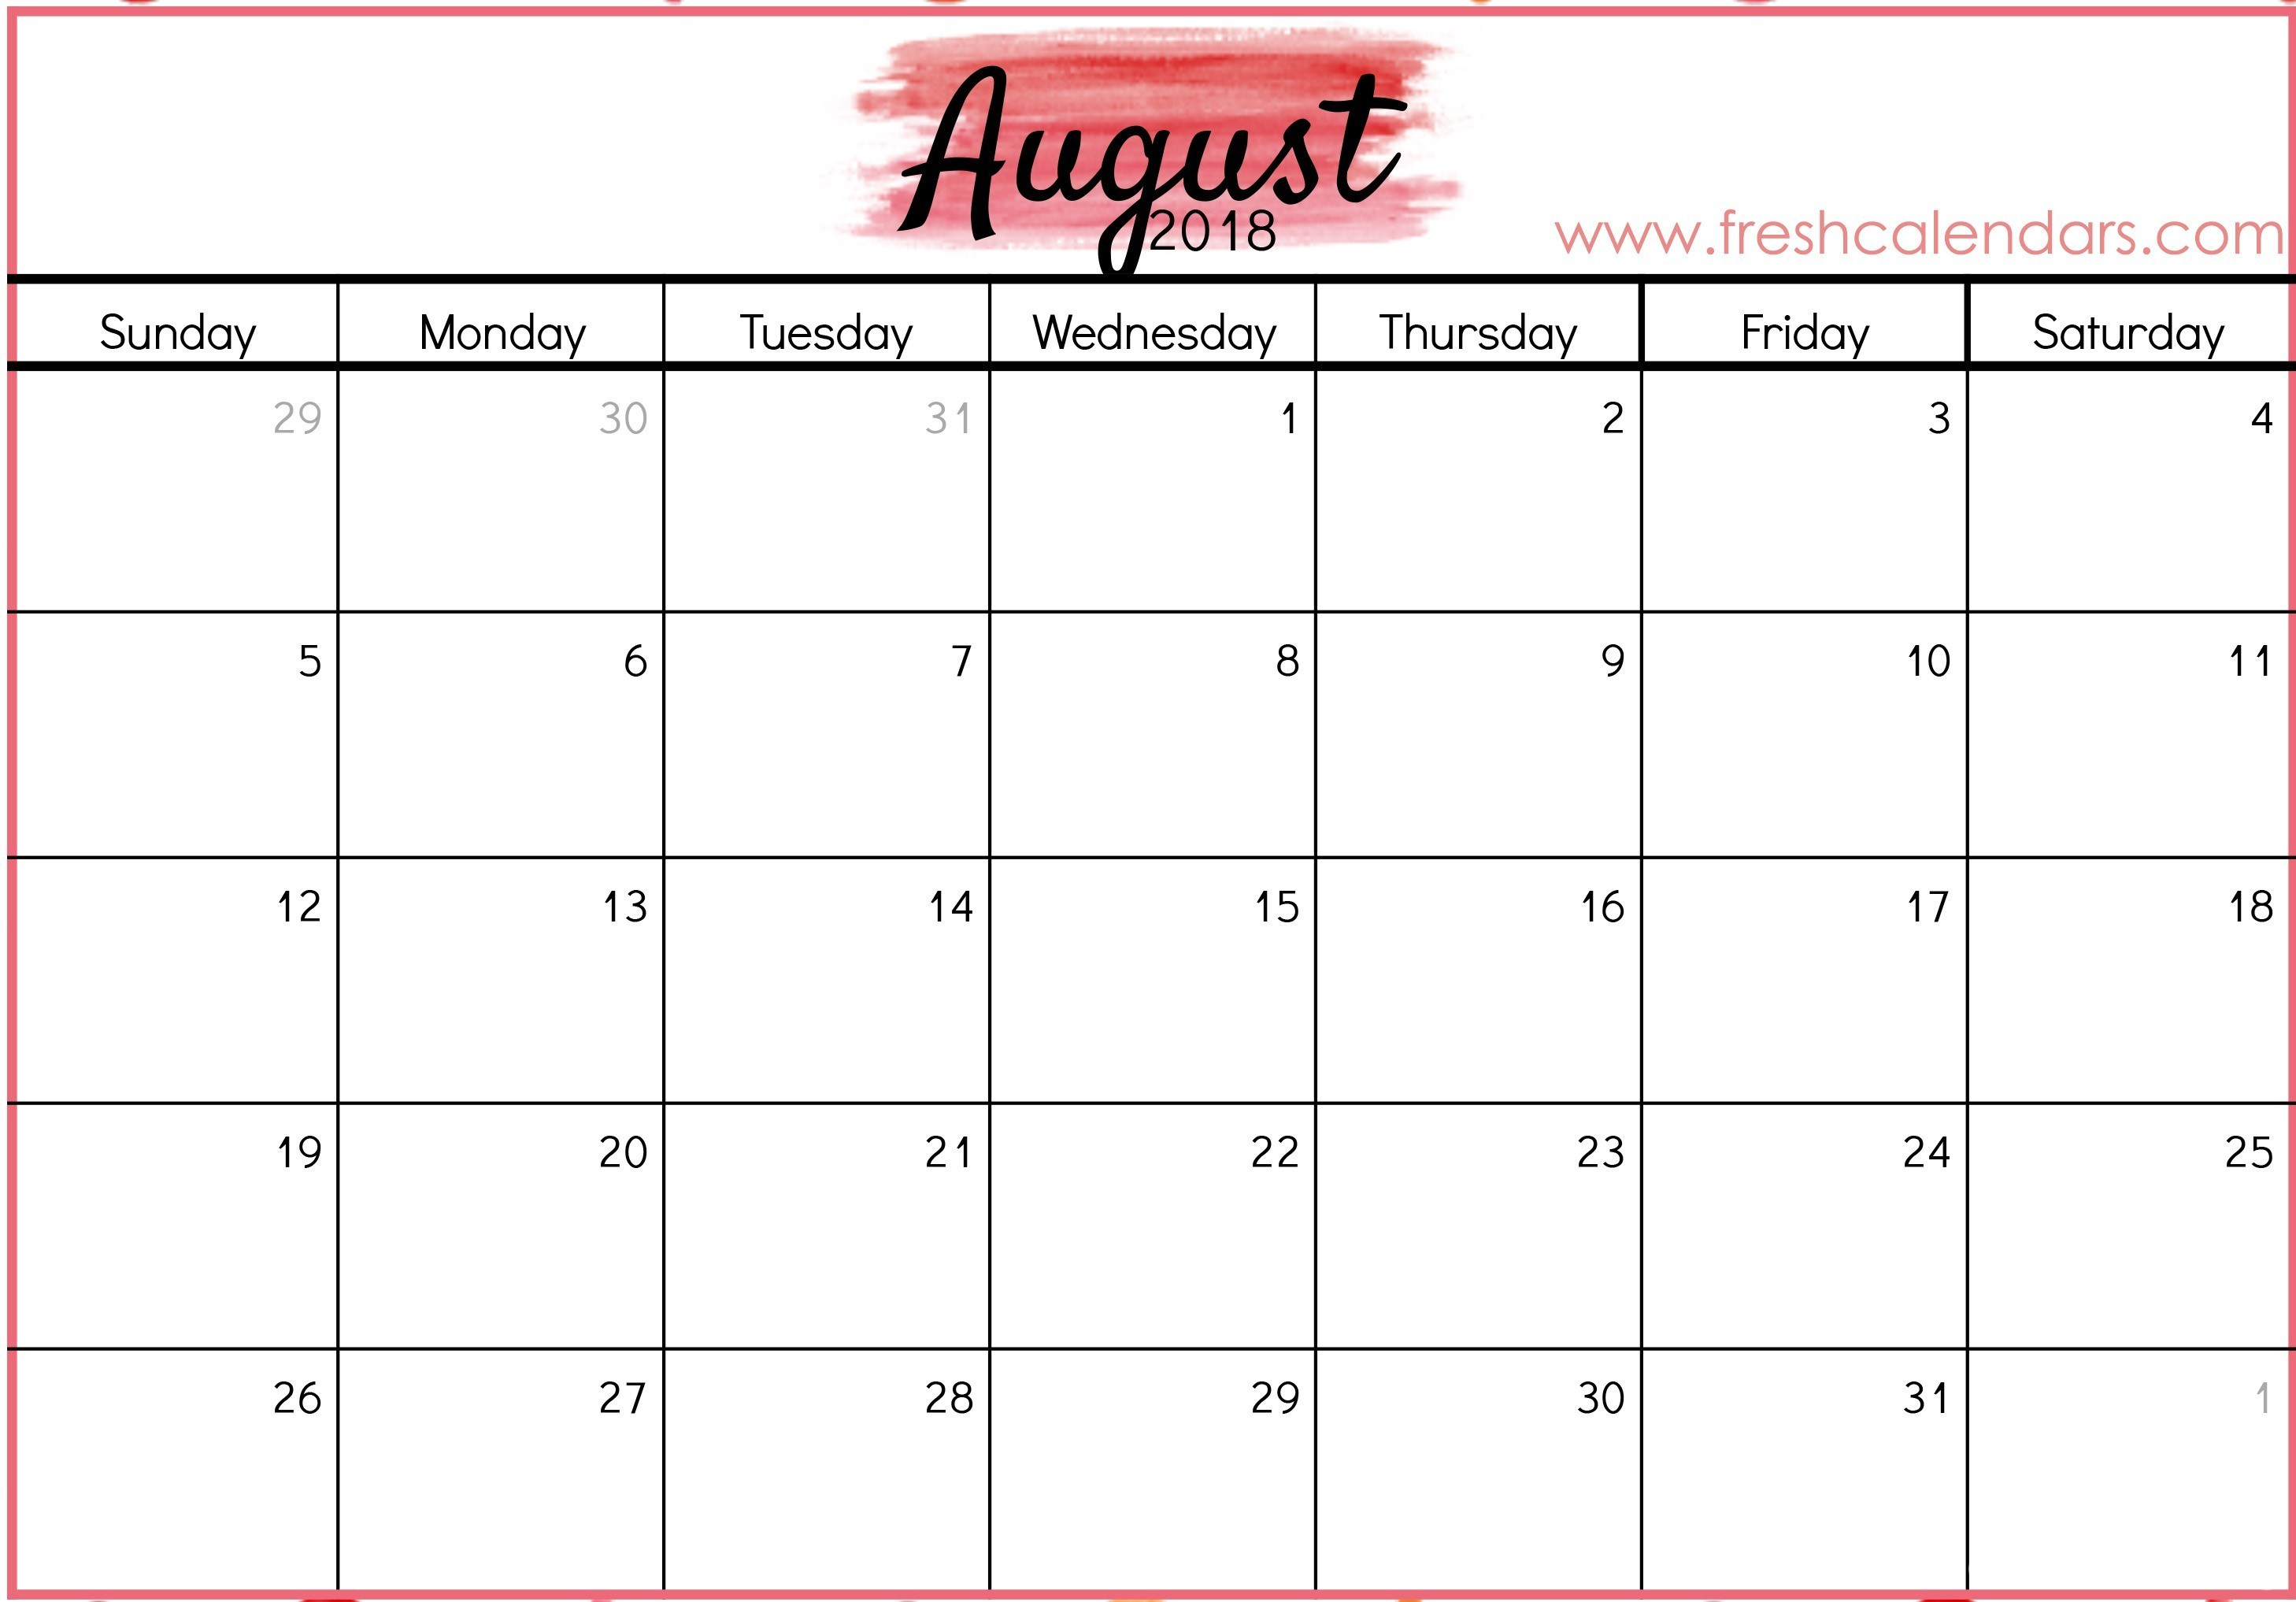 Labeled August Calendar Printable 2016 2017 Free 86 January 2018 Calendar Printable Imom Imom Calendar 2018 April por calendario 2019 para imprimir